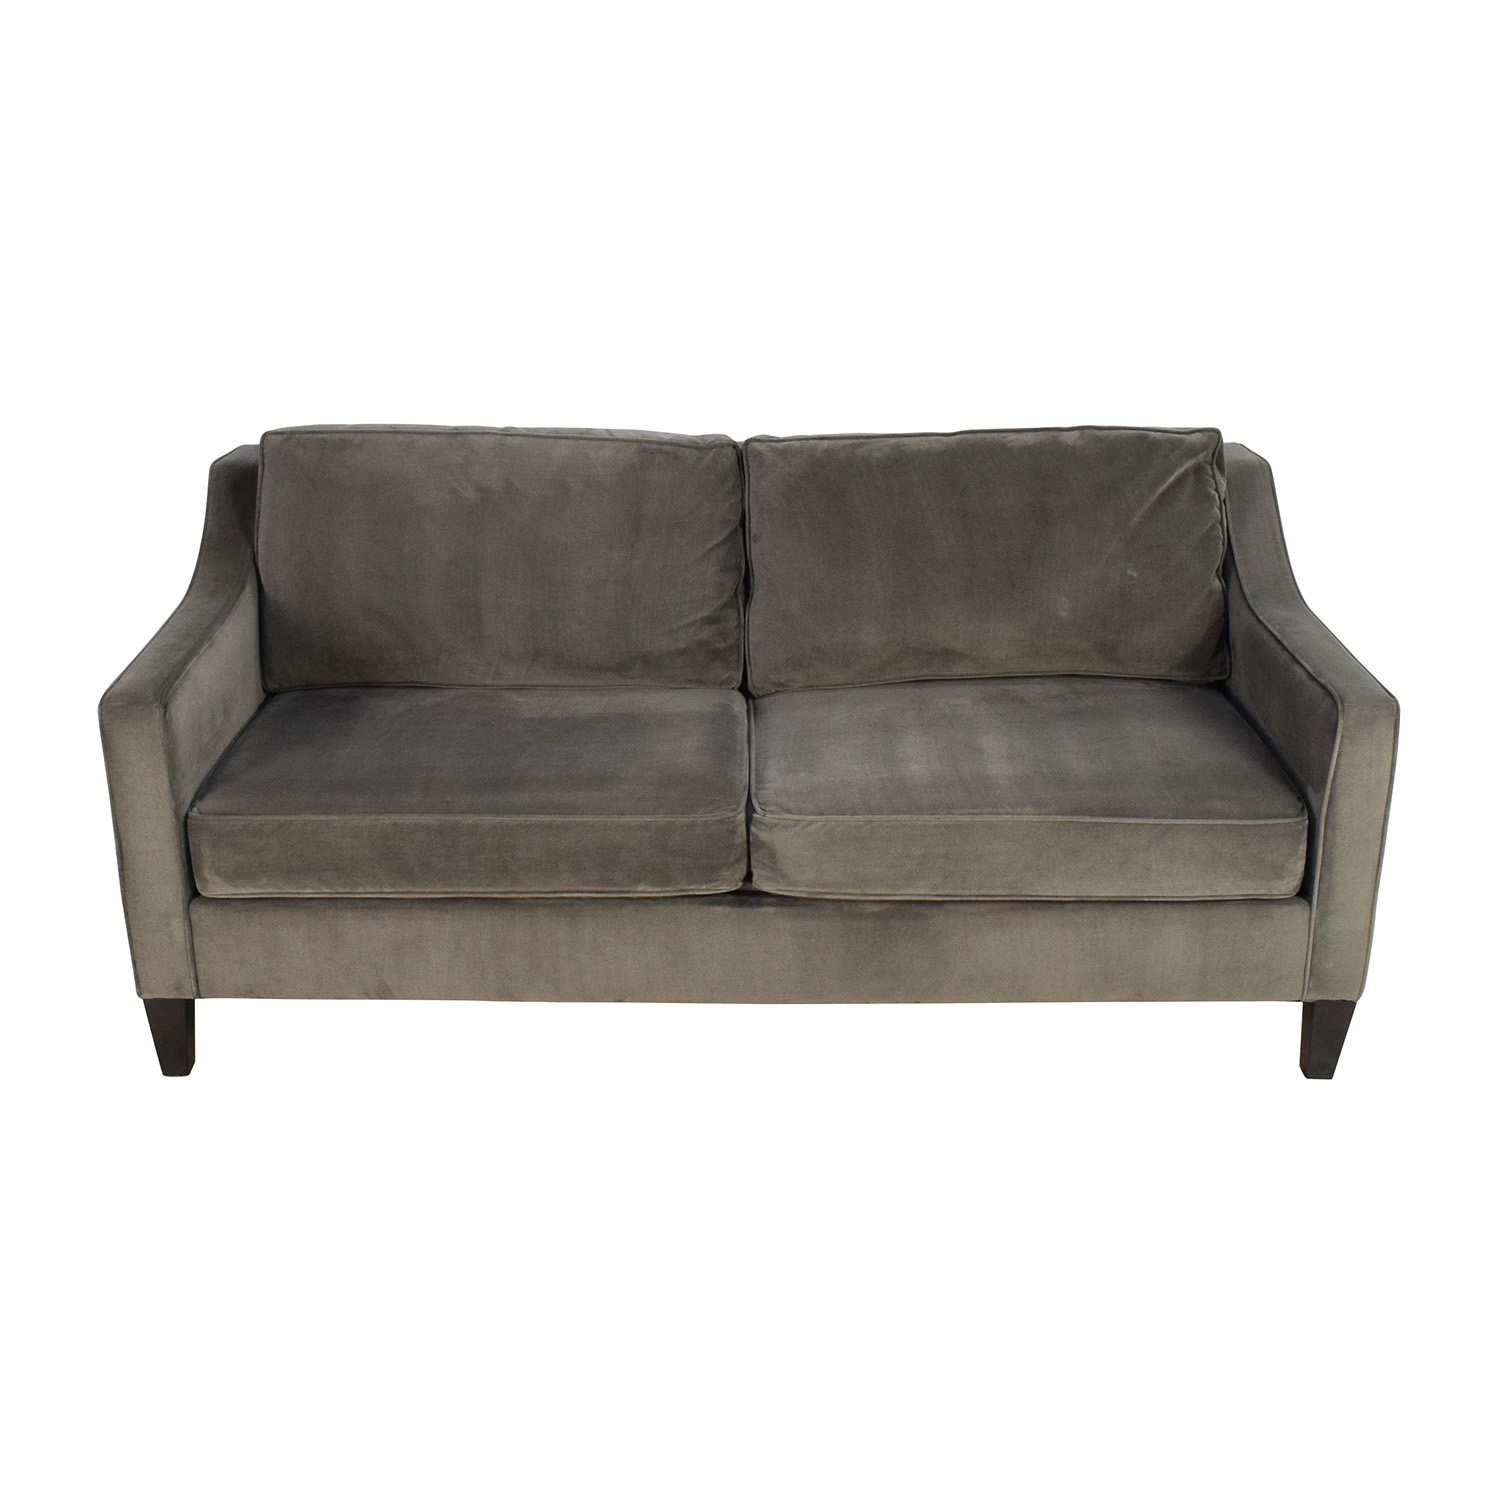 Superb West Elm West Elm Paidge Sofa